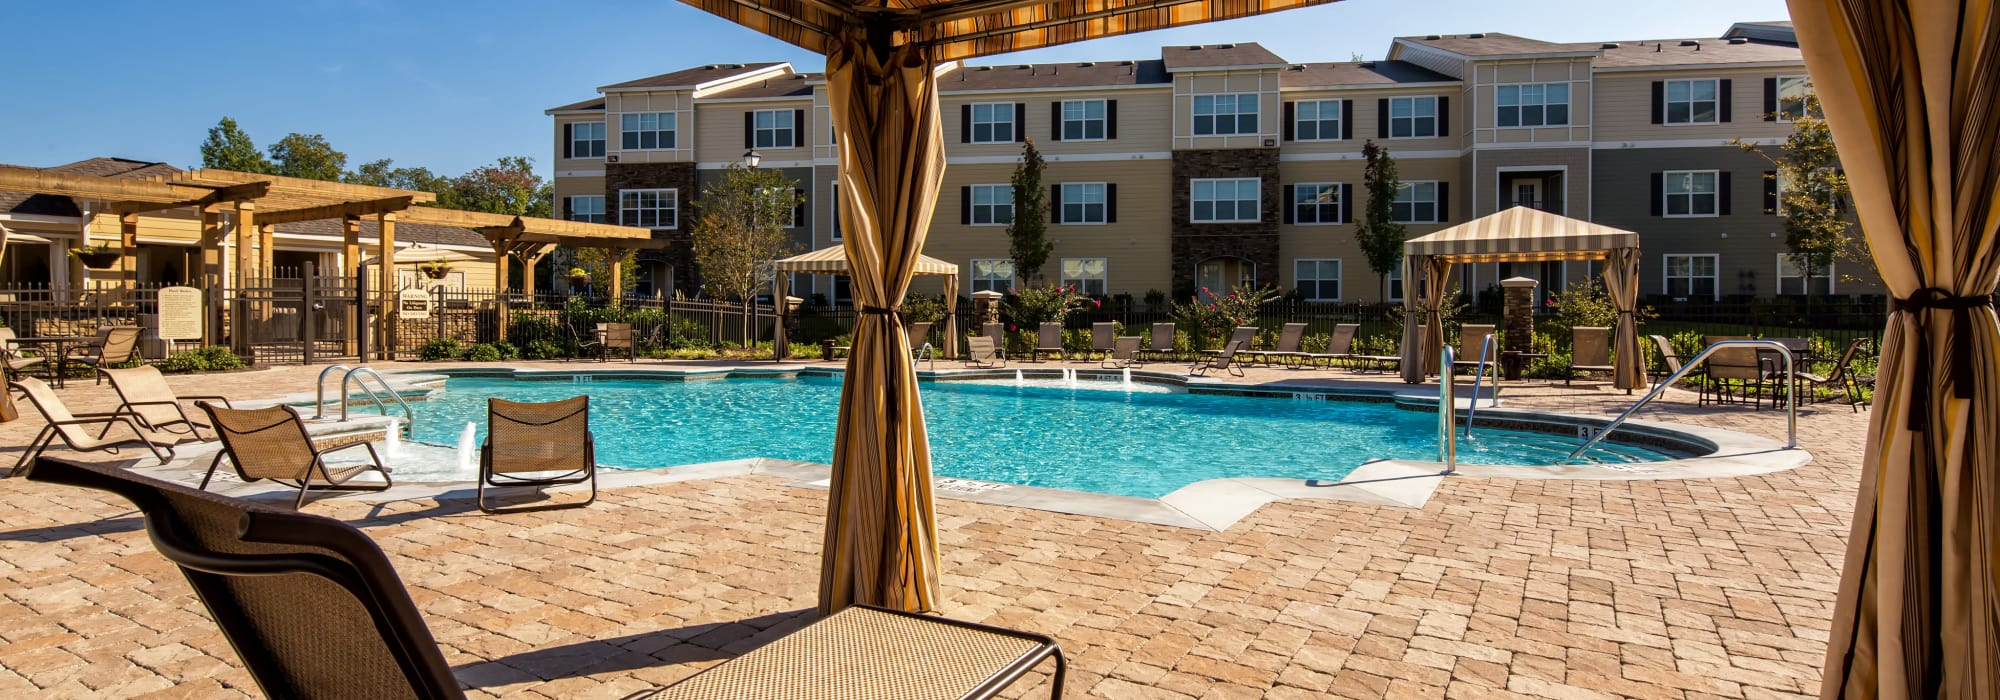 north columbus ga apartments for rent enclave at highland ridge enclave at highland ridge